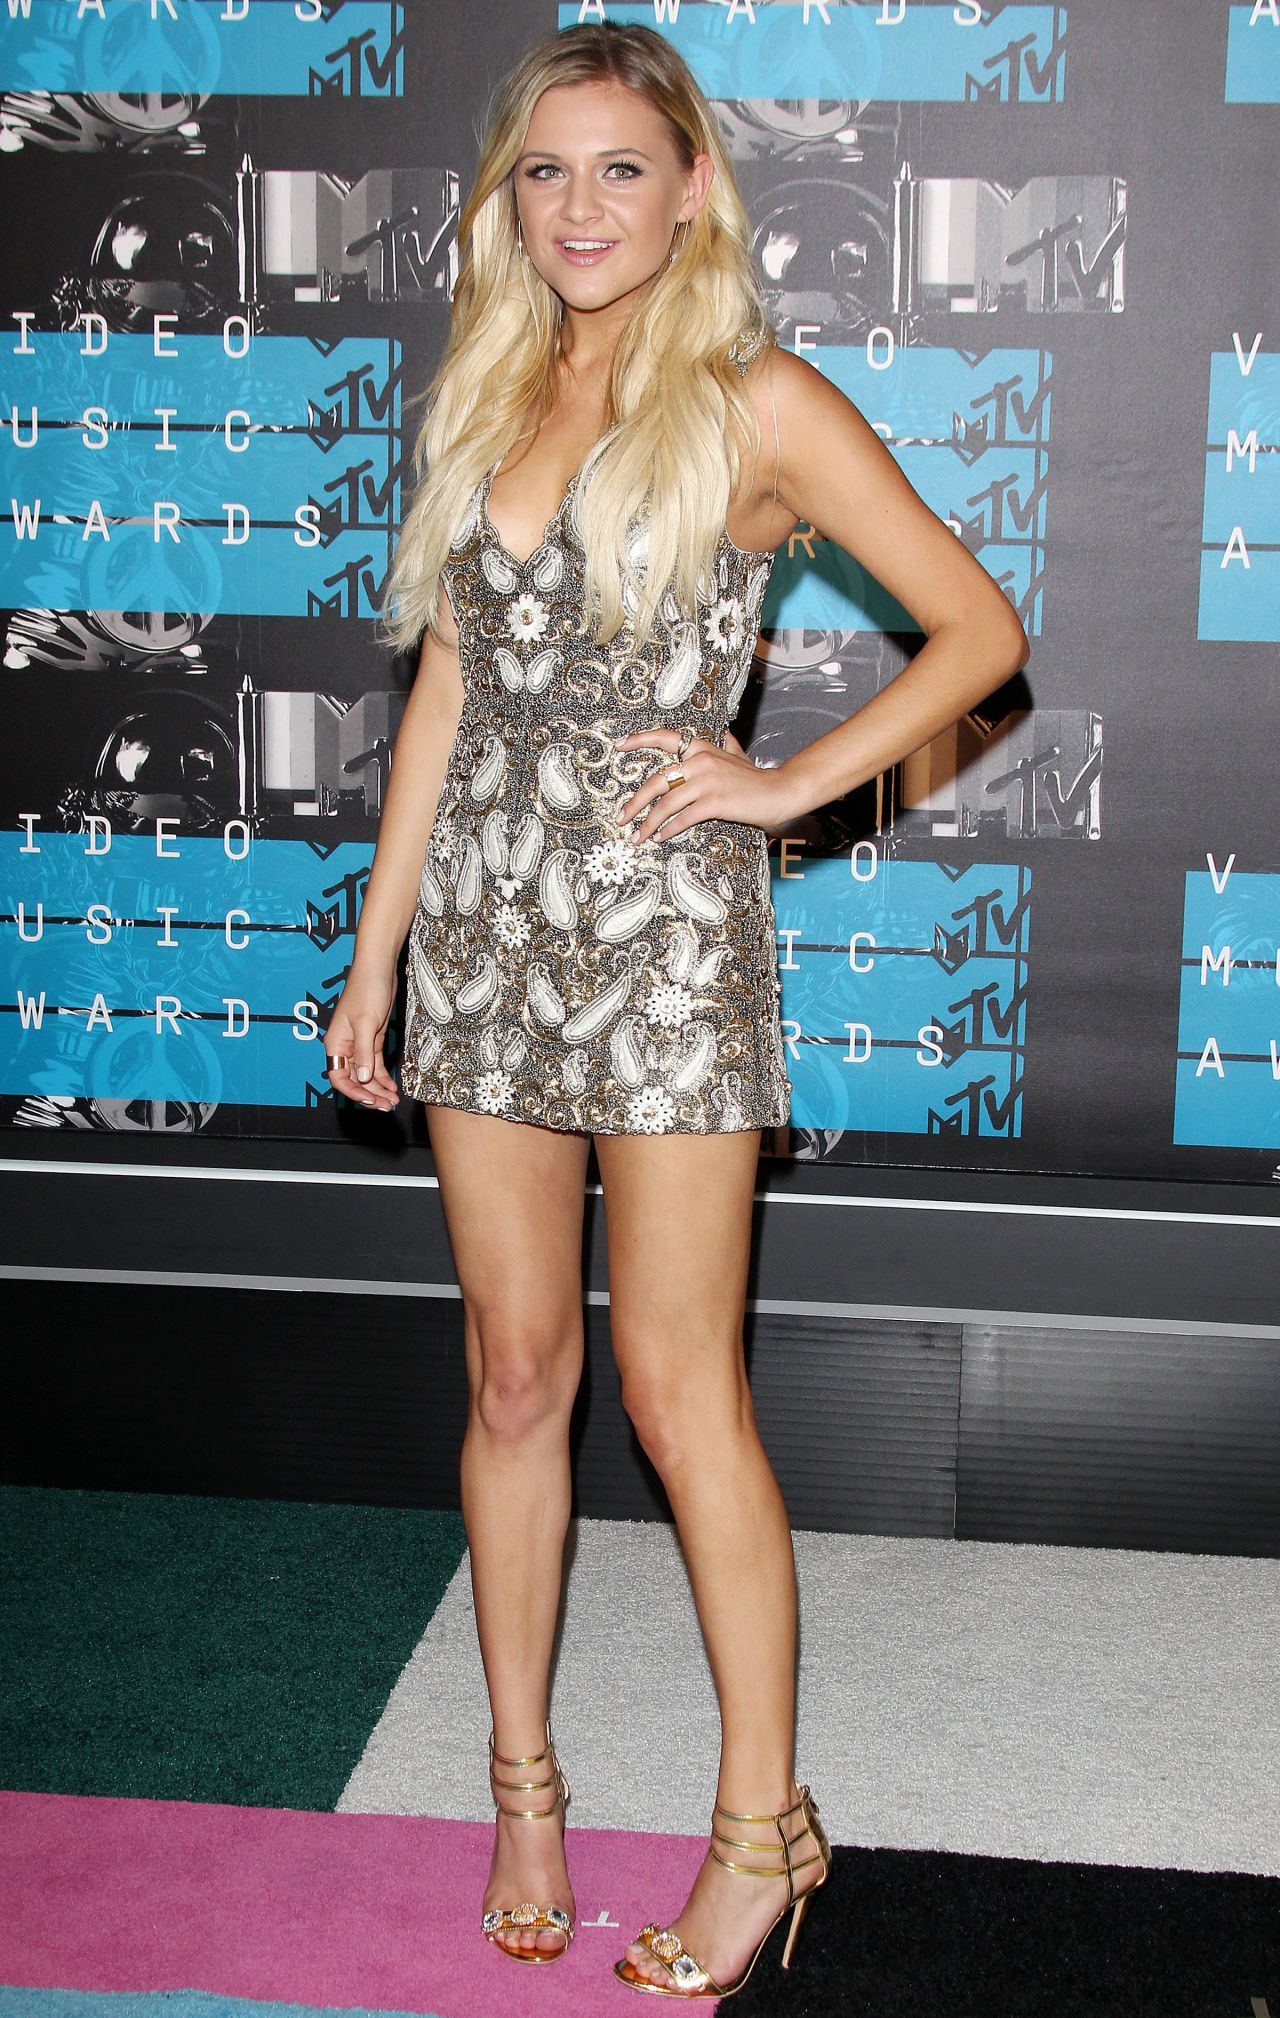 Images Kelsea Ballerini nude (87 photos), Tits, Fappening, Boobs, legs 2019